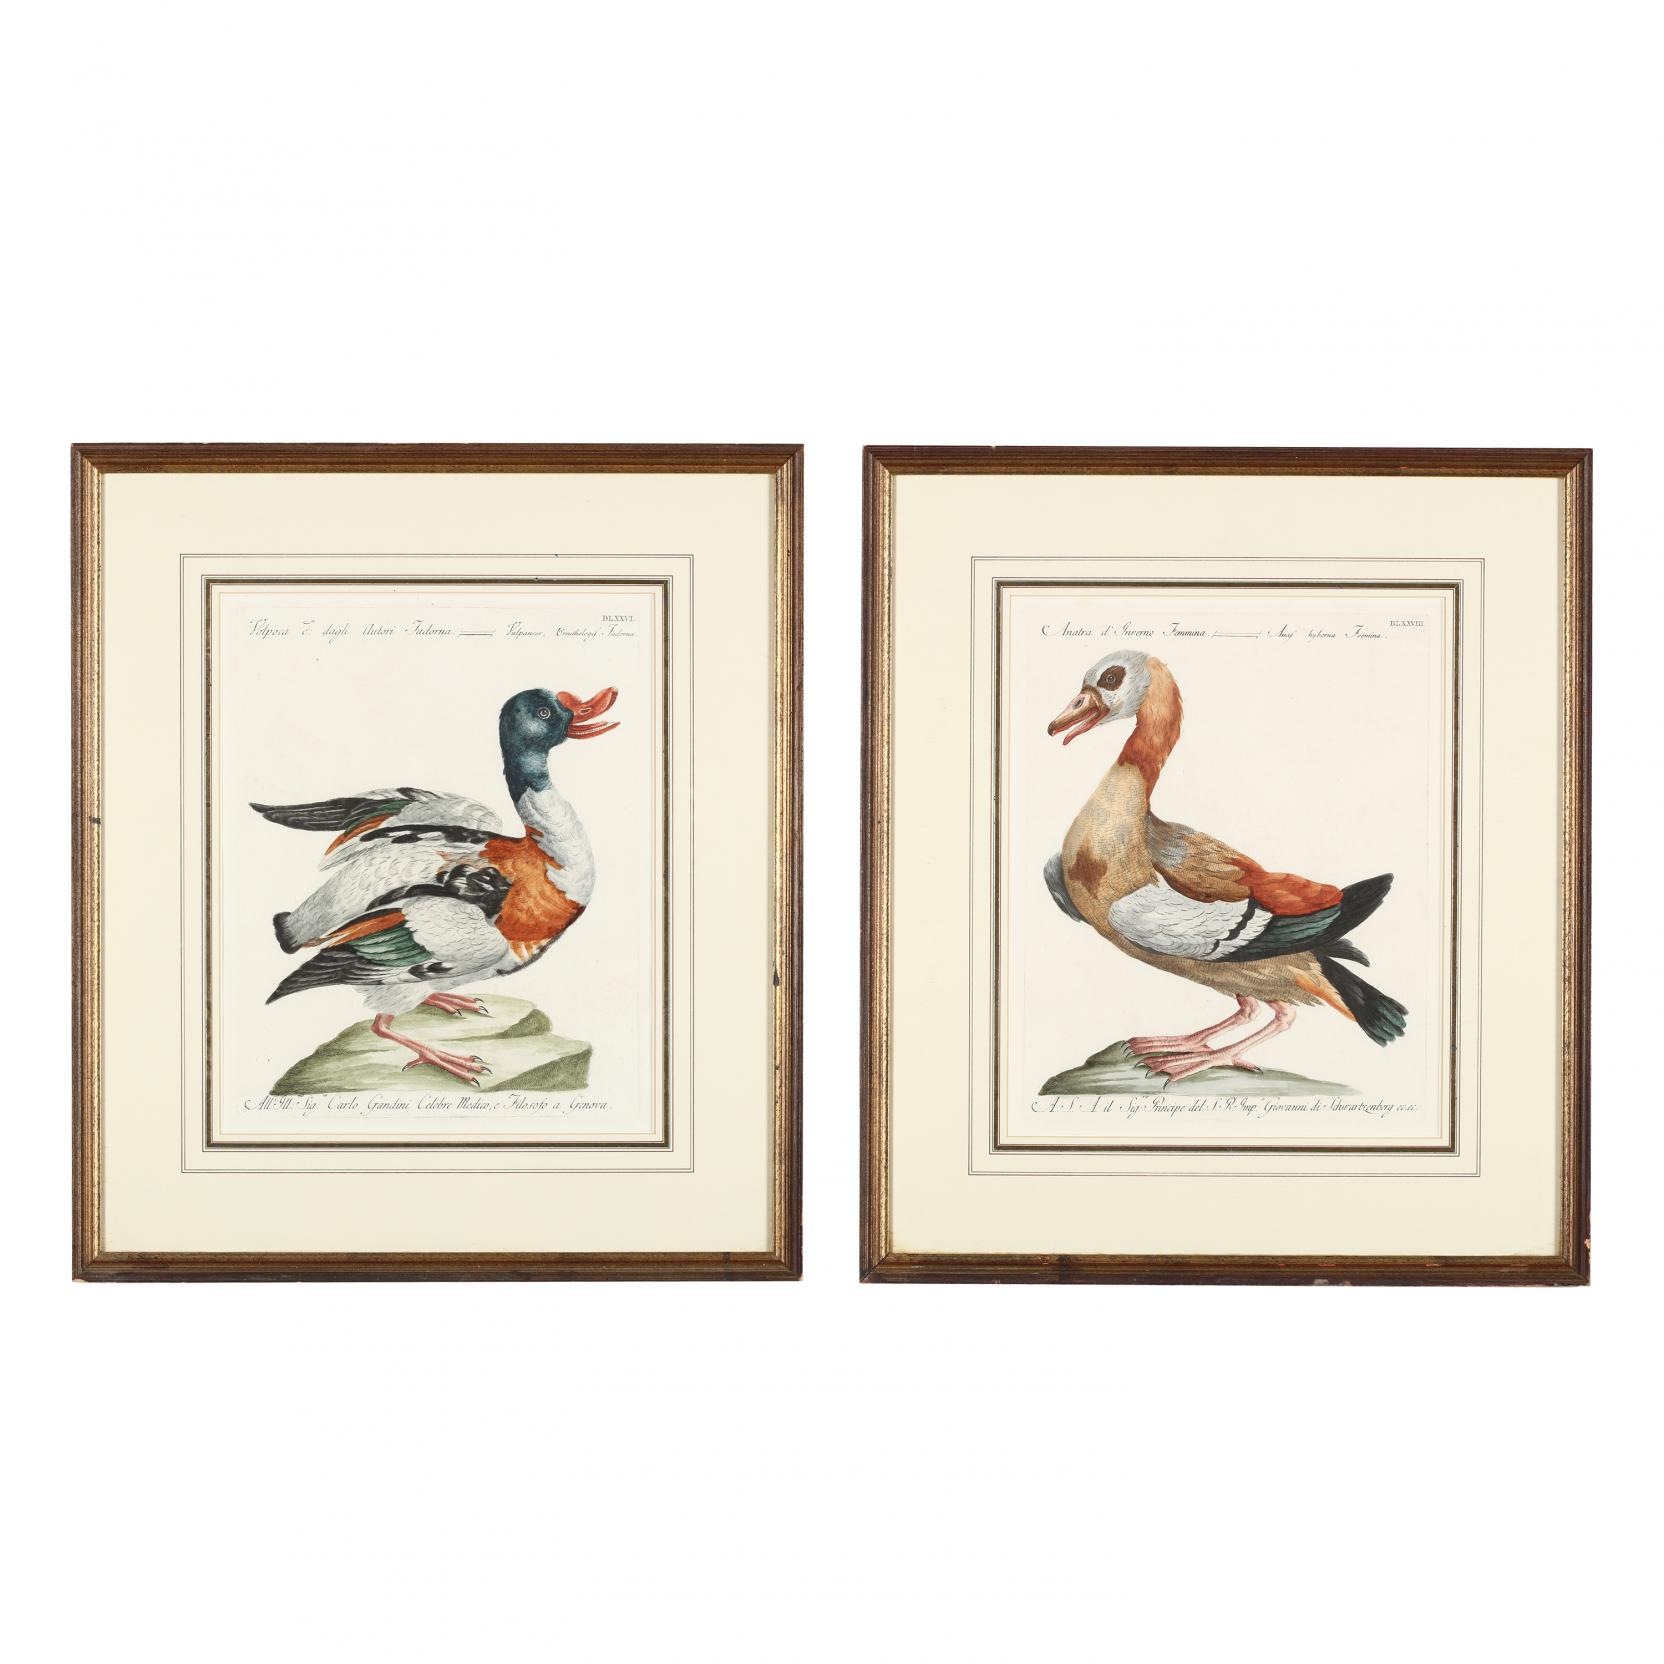 saverio-manetti-italian-1723-1784-pair-of-engravings-picturing-ducks